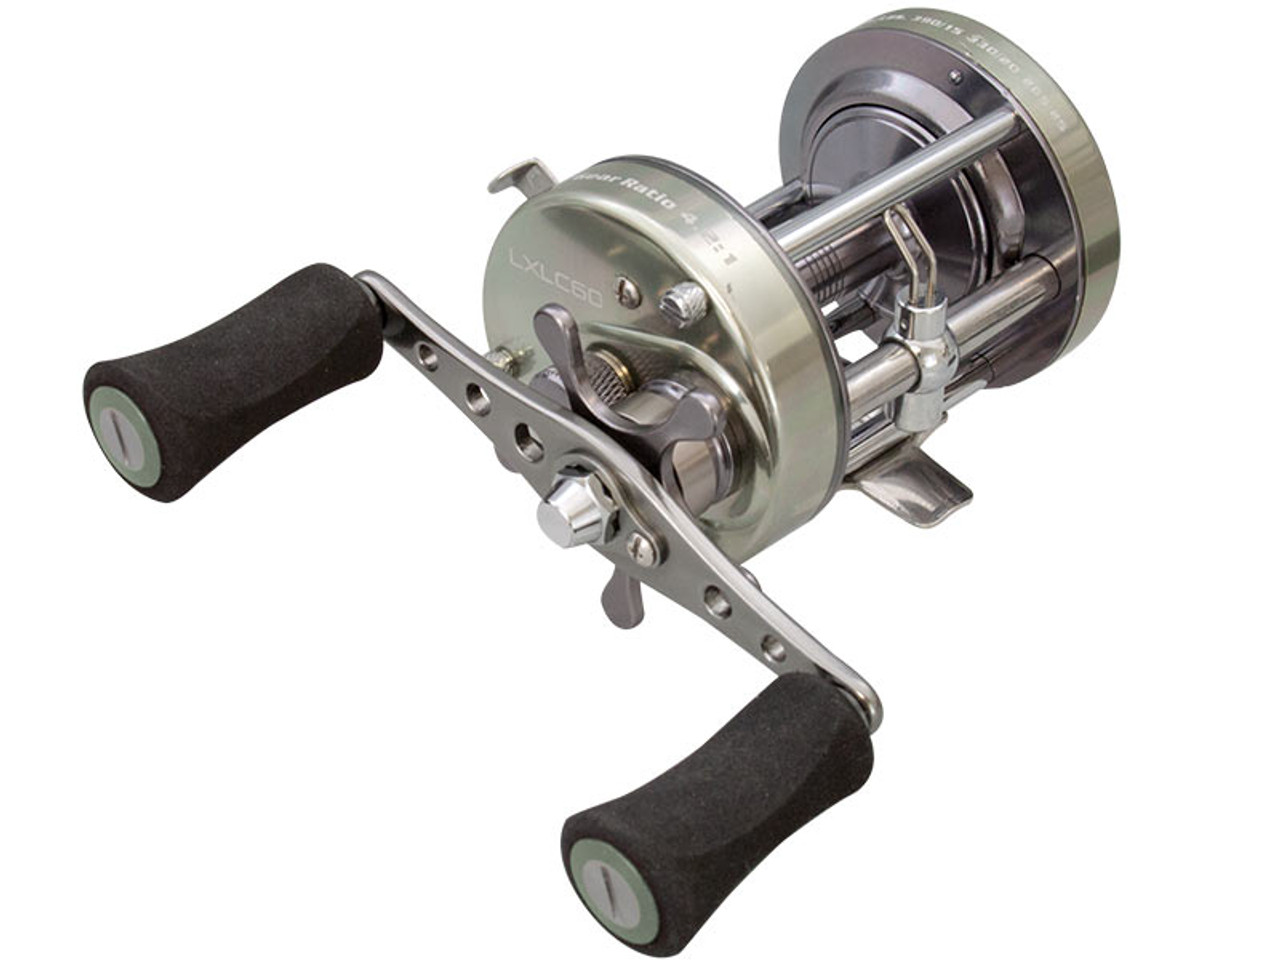 Lew's Laser XL Round Casting Reel RIGHT HANDED LXLC60